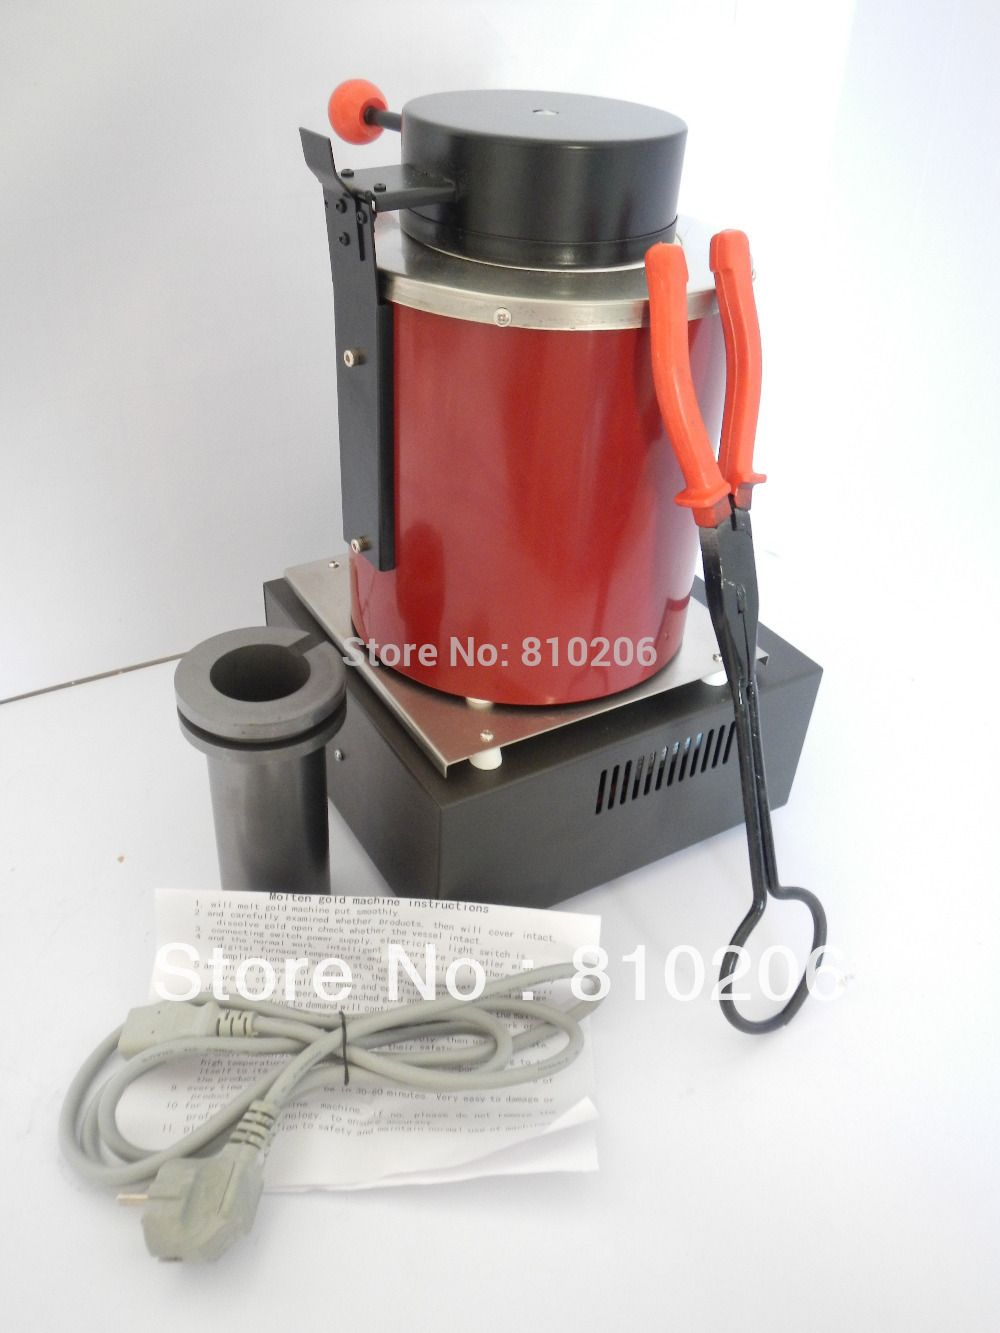 220 Voltage and 2KG Capacity Gold Electric Melting Furnaces with 1pc Graphite Crucible & Plier, melting furnace